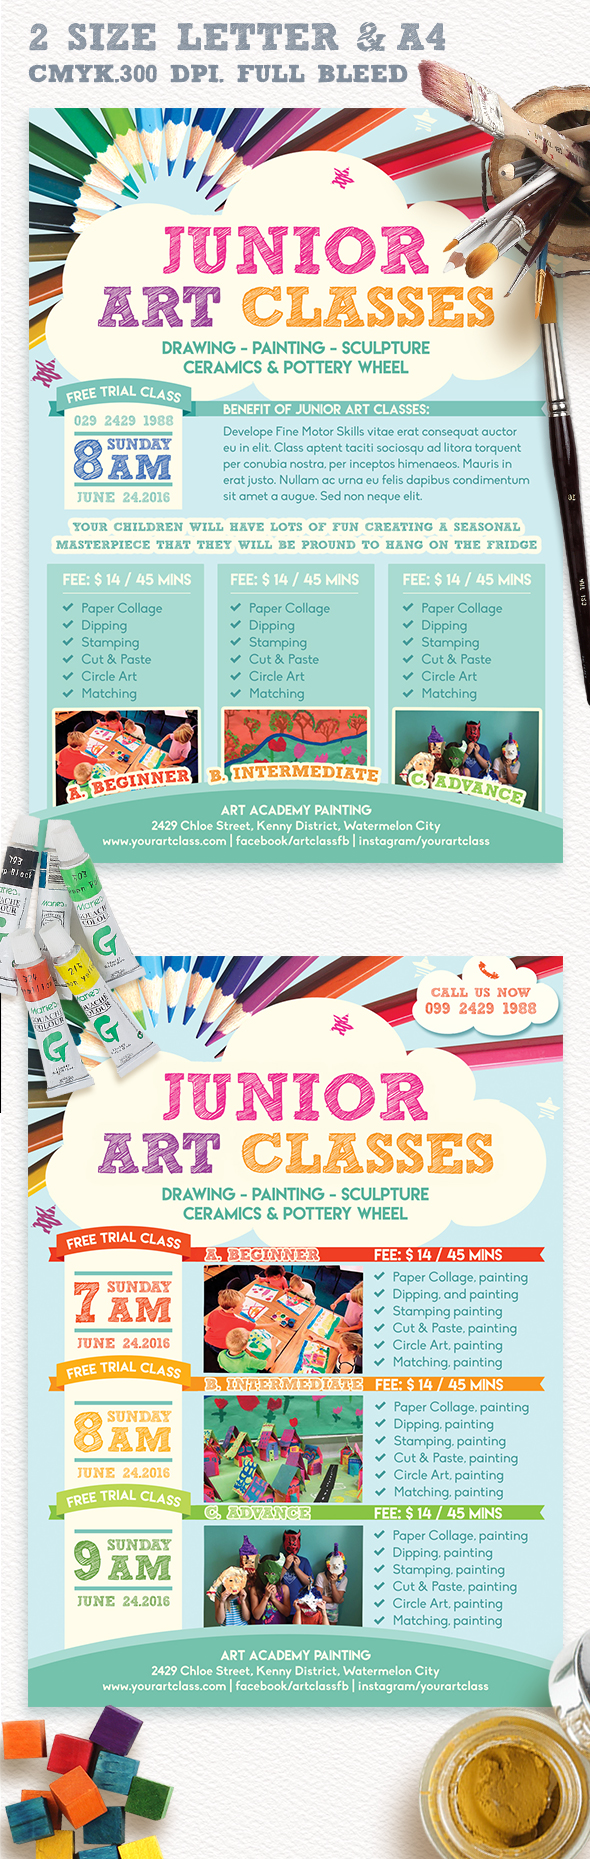 Junior Art Free Trial Class Template Academy Advance Art Blue